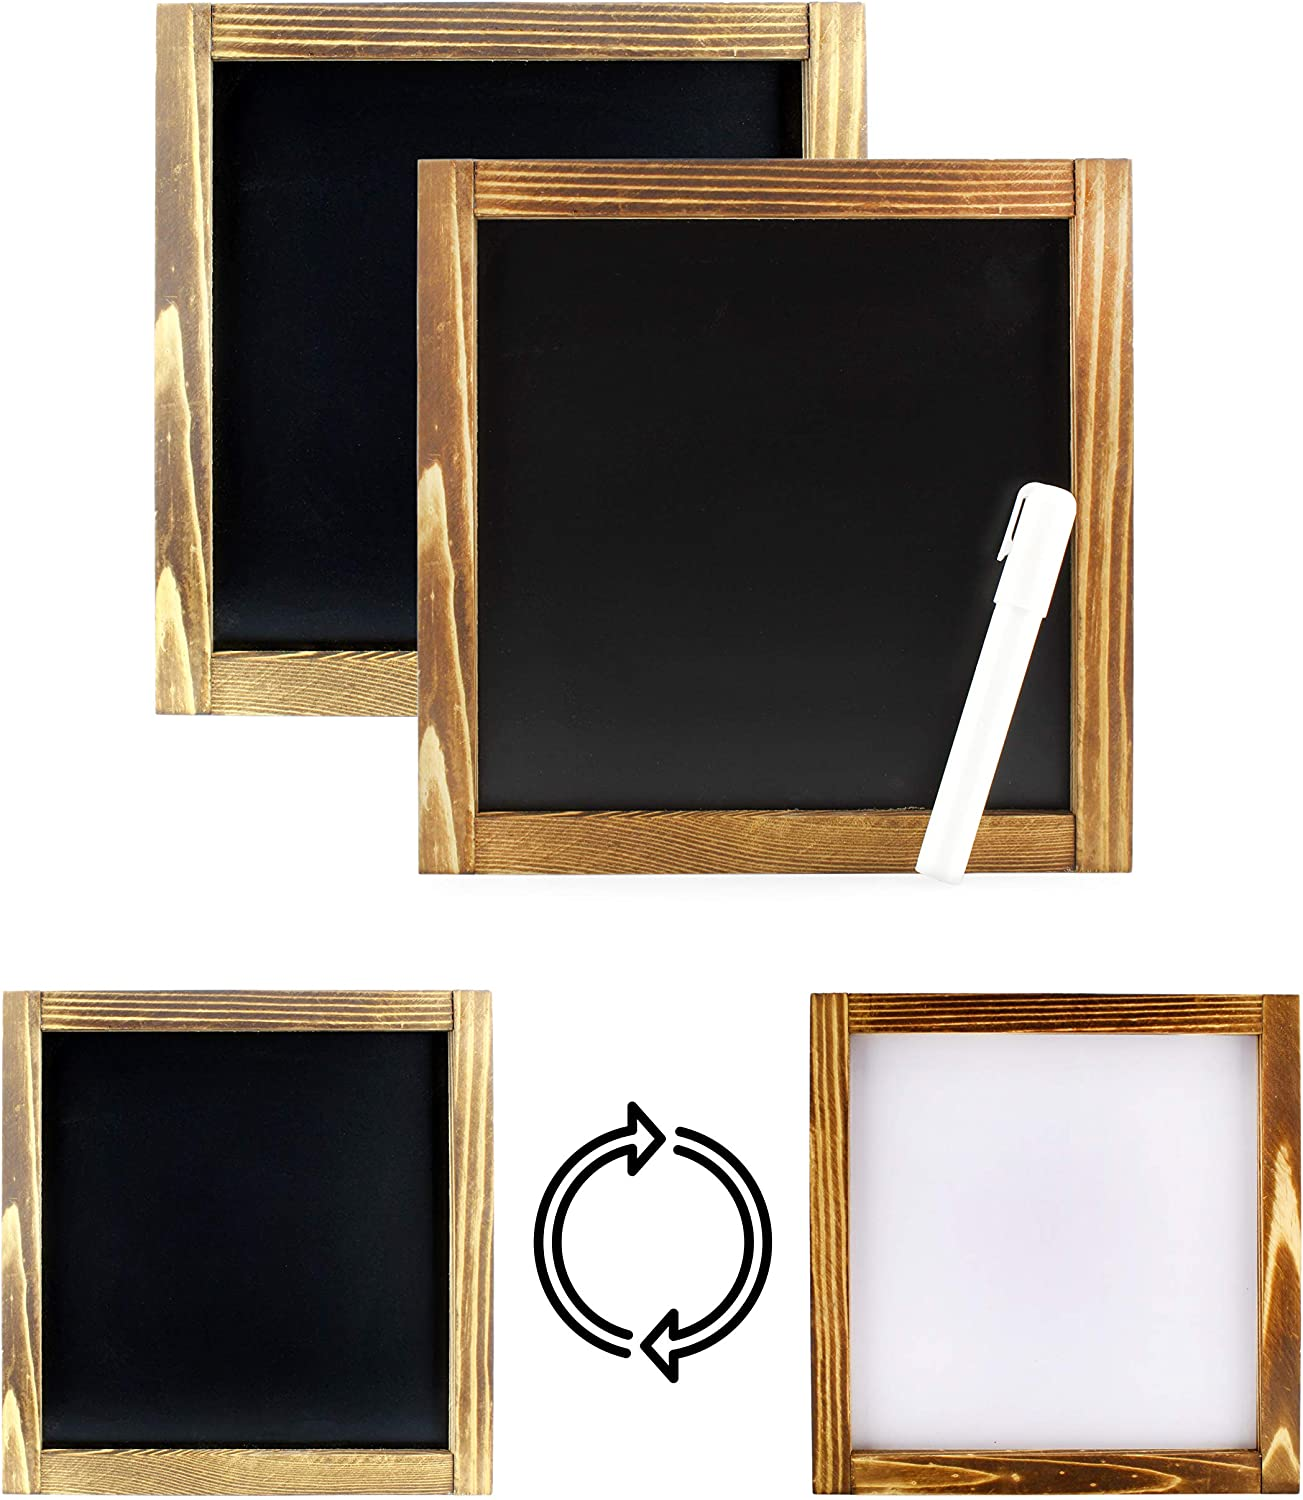 Decorae Reversible Blank Framed Signs (2-Pack), Black or White 2-Sided DIY Signs for Arts & Crafts, 10 x 10 Inches Square